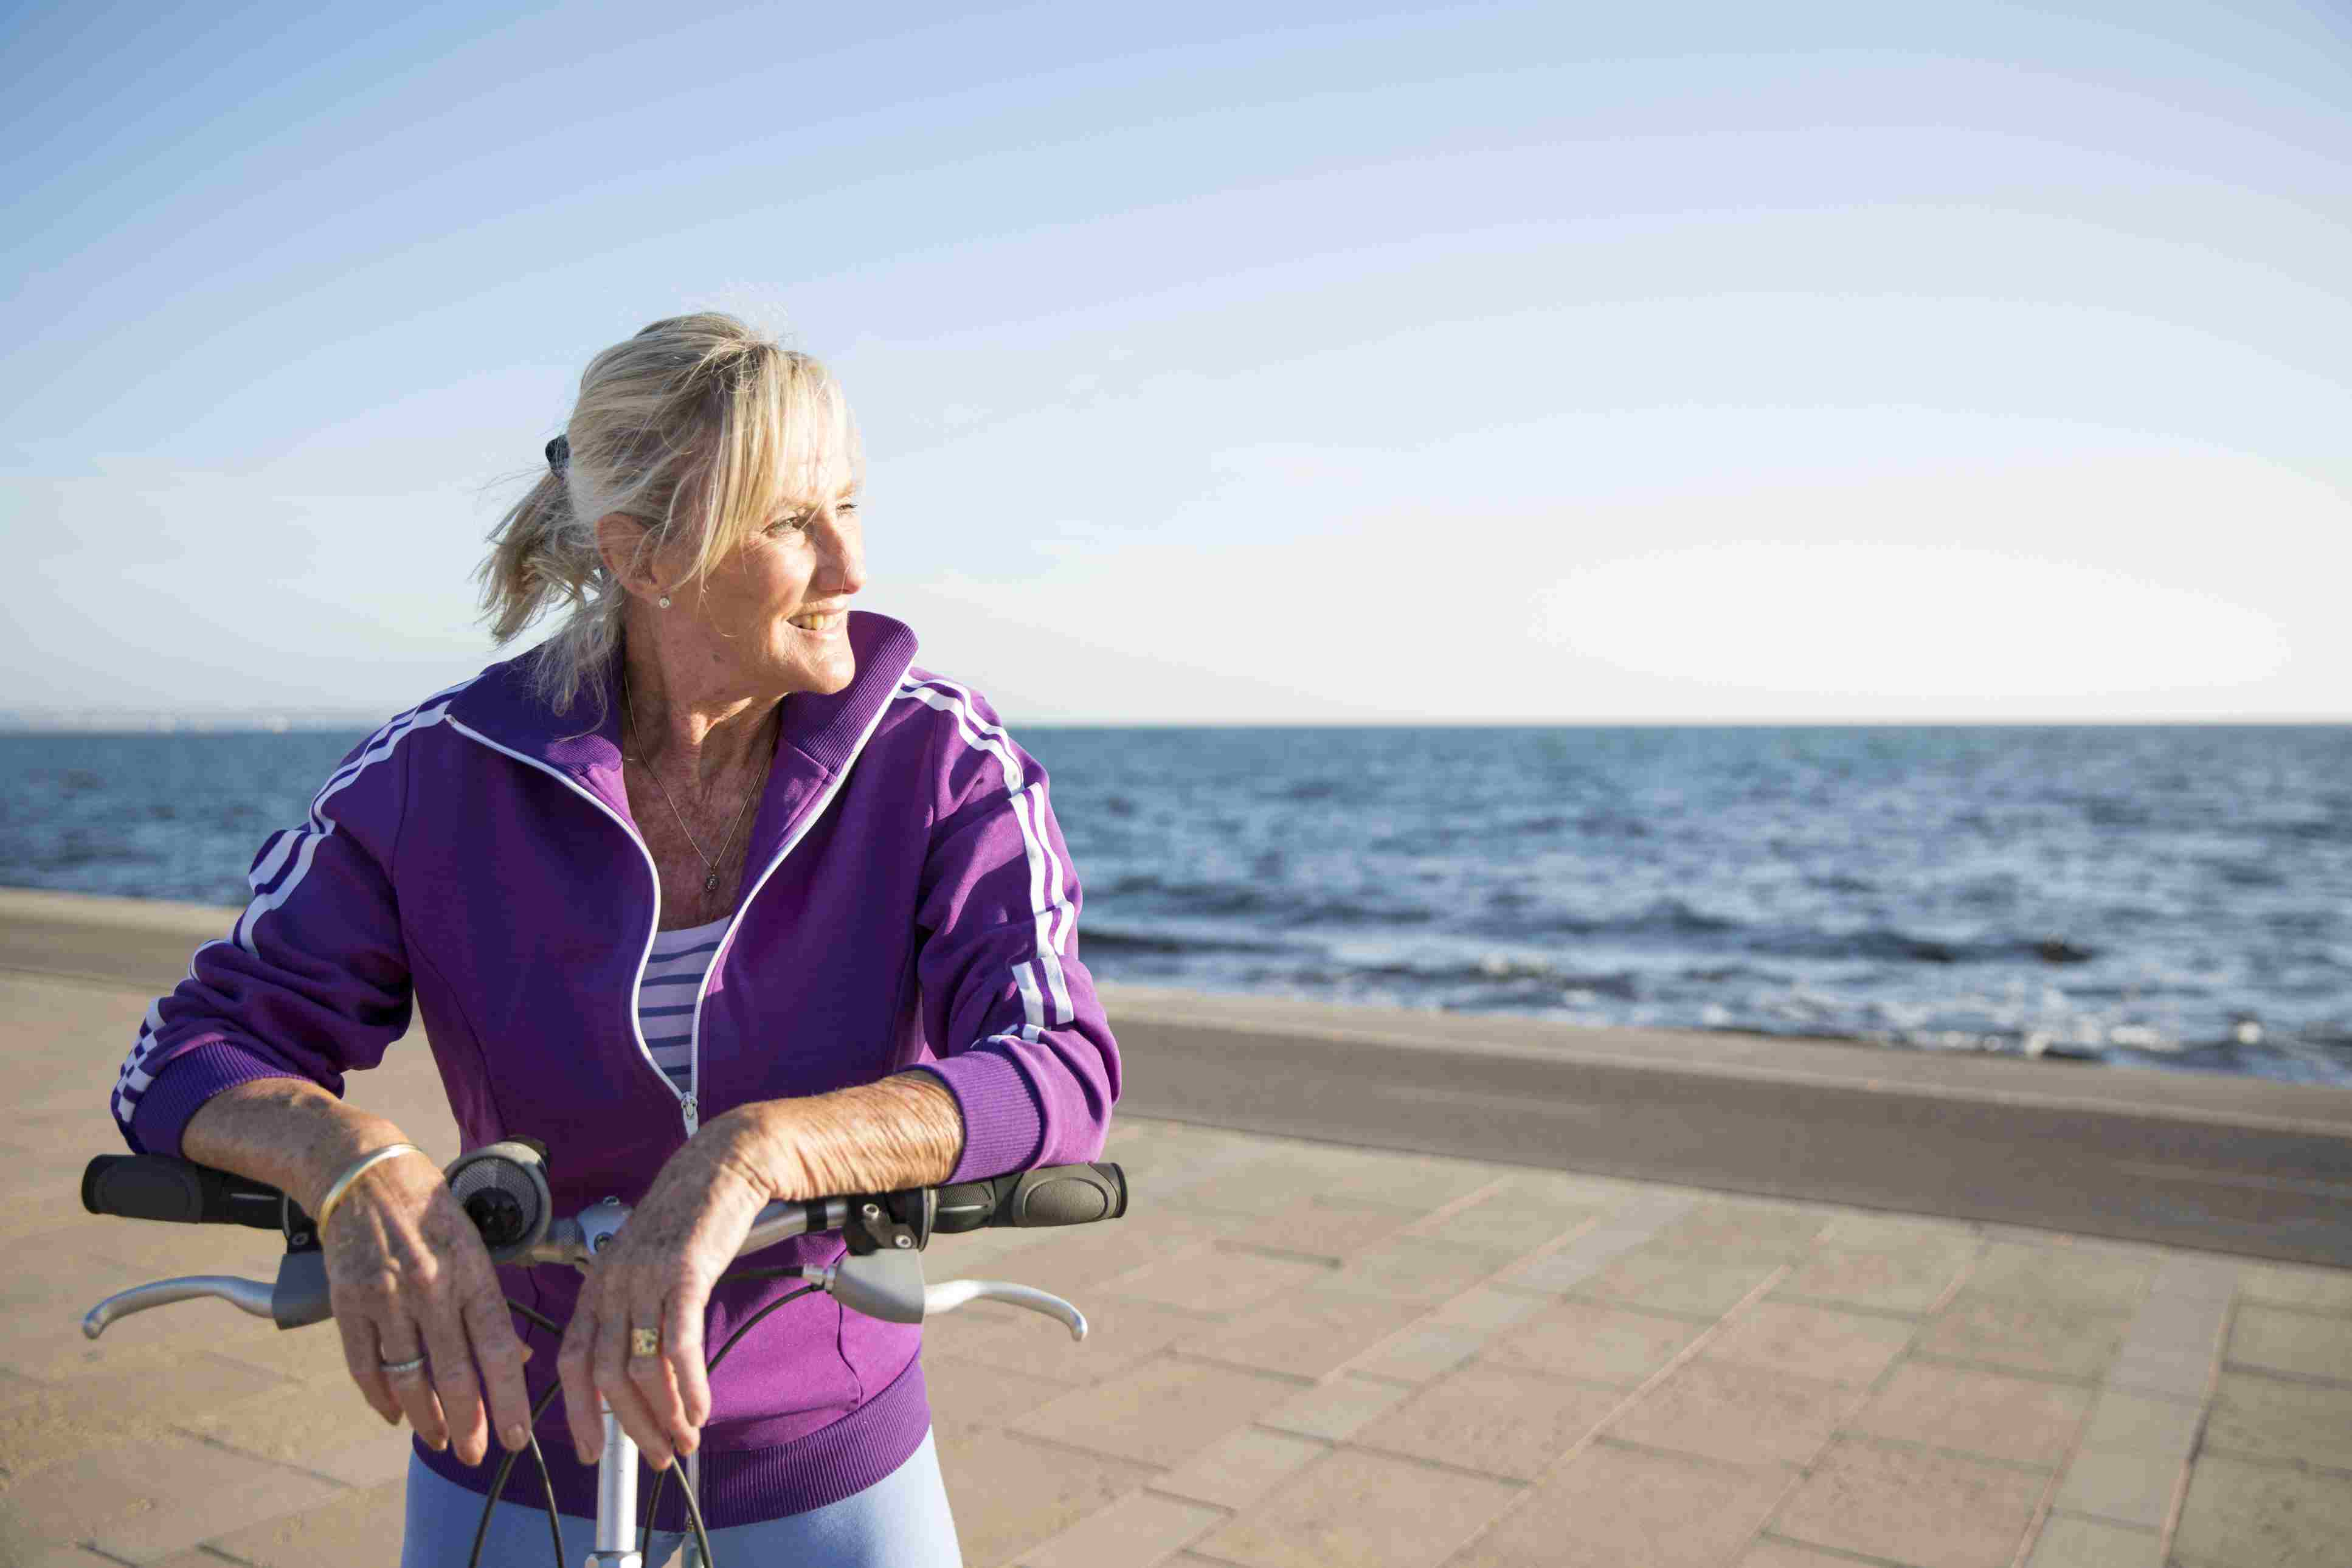 Woman resting on bike handle bars in front of the ocean.